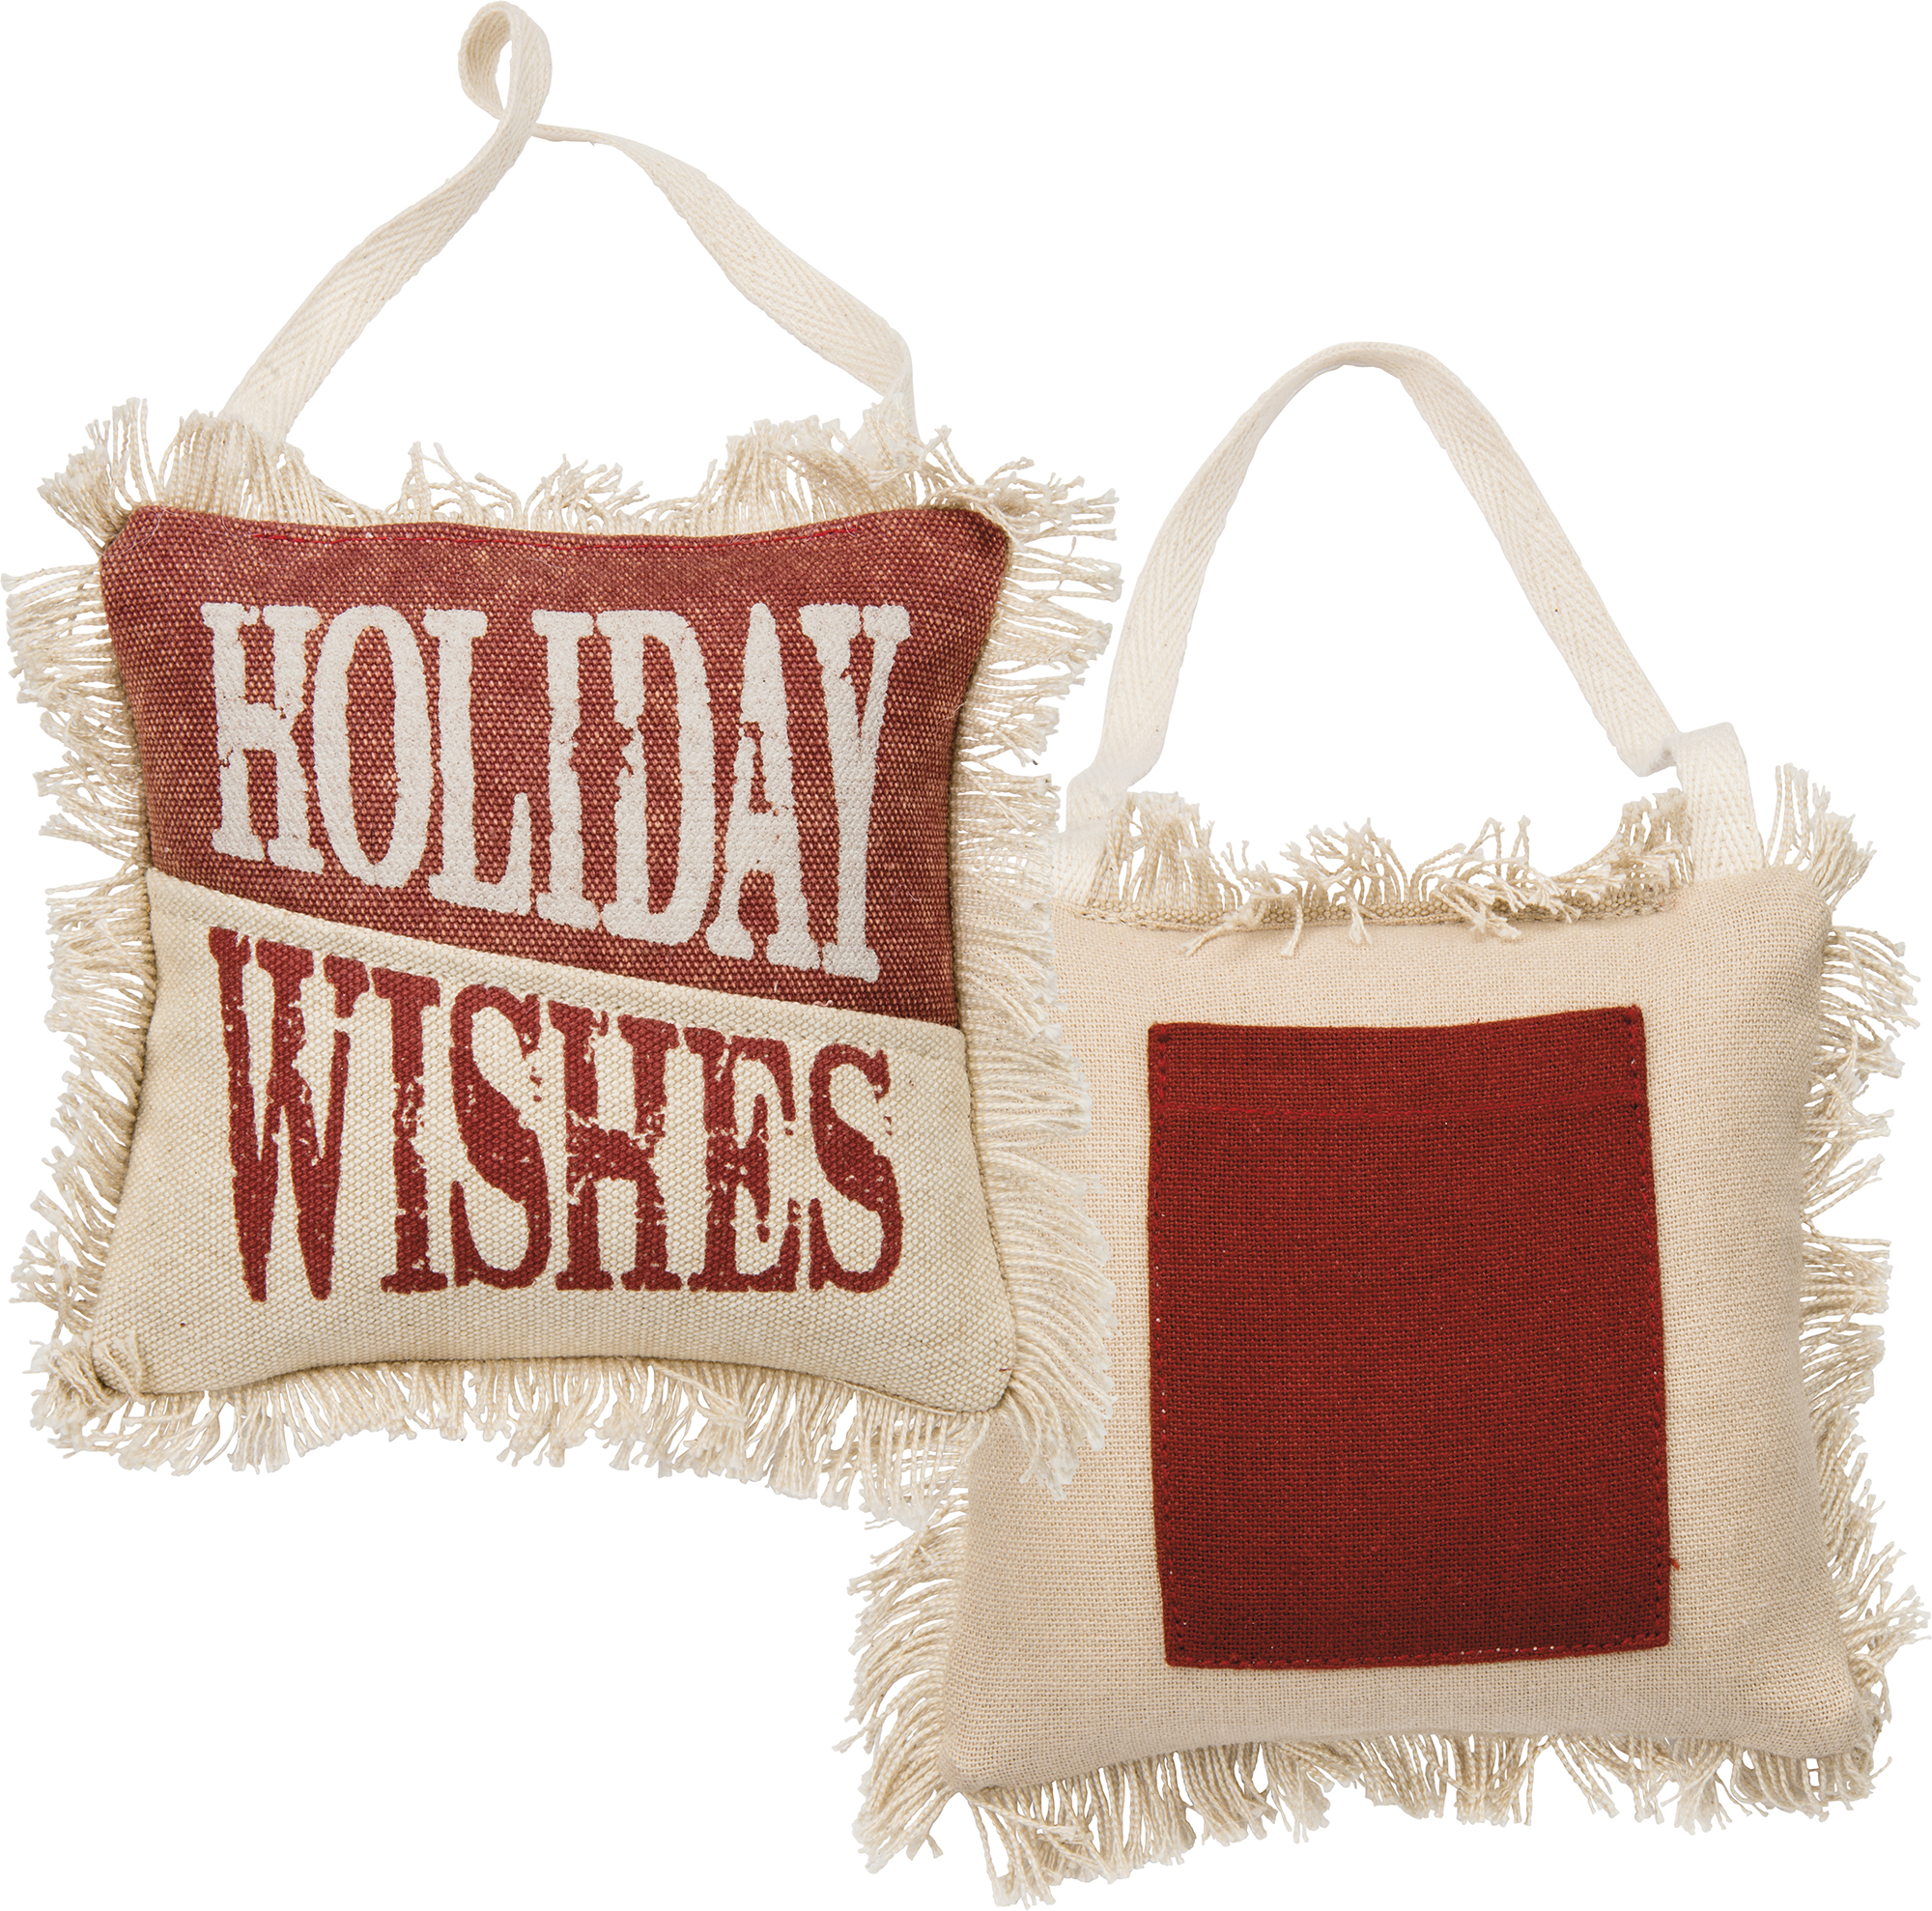 Holiday Wishes Mini Pillow $9